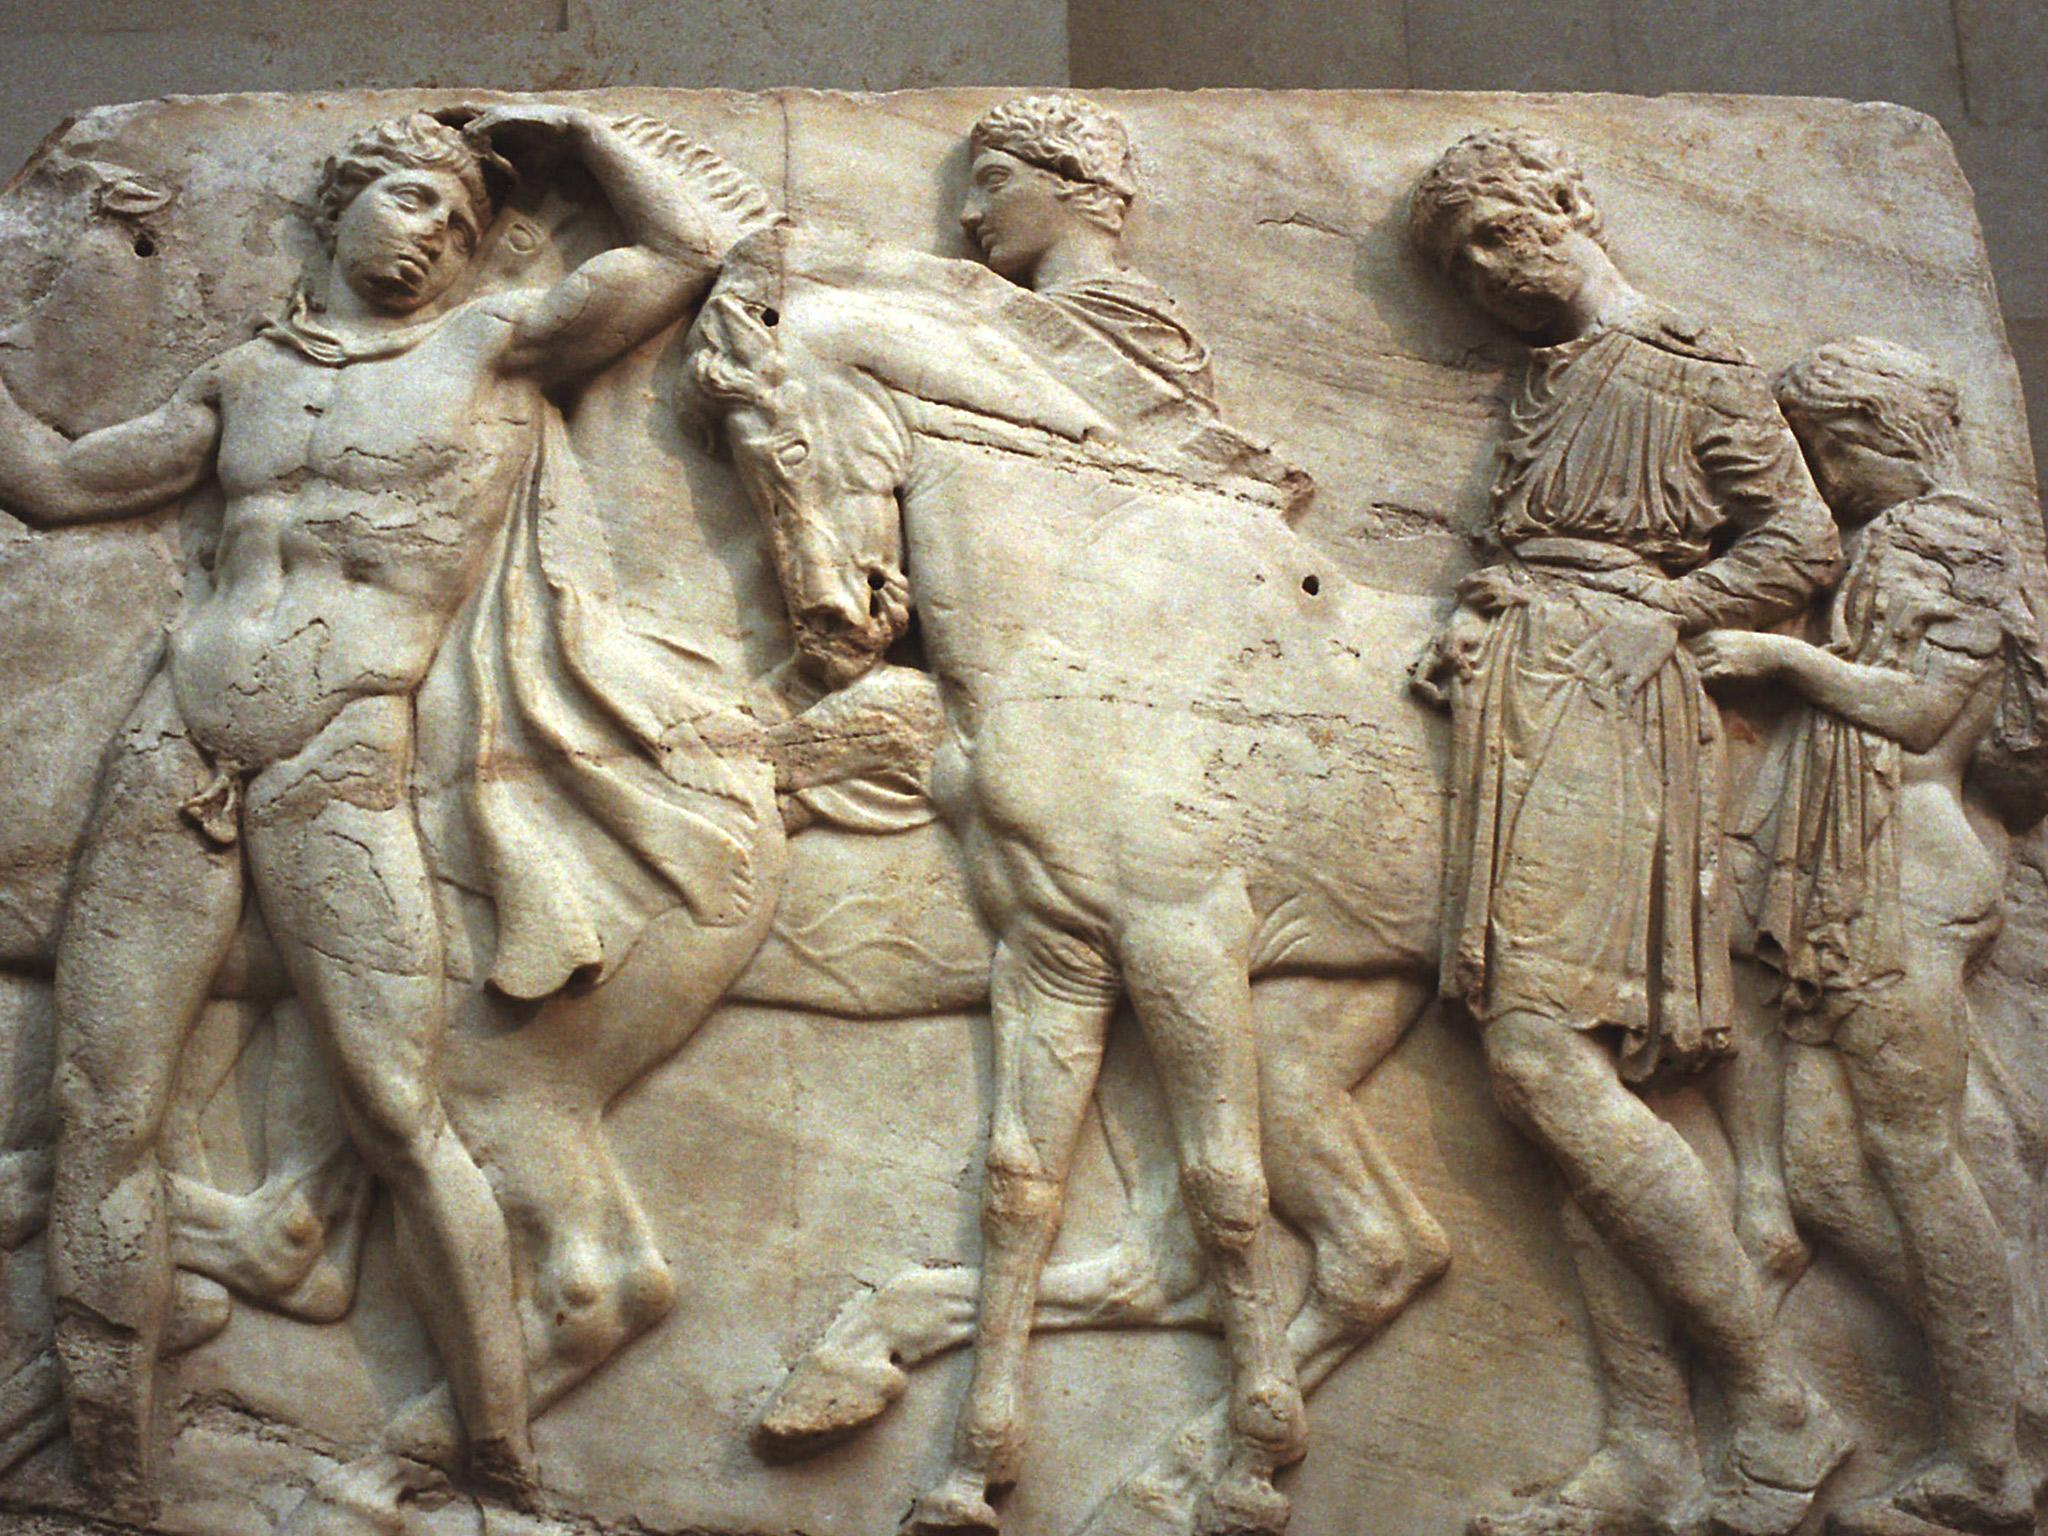 First Ever Legal Bid For Return Of Elgin Marbles To Greece